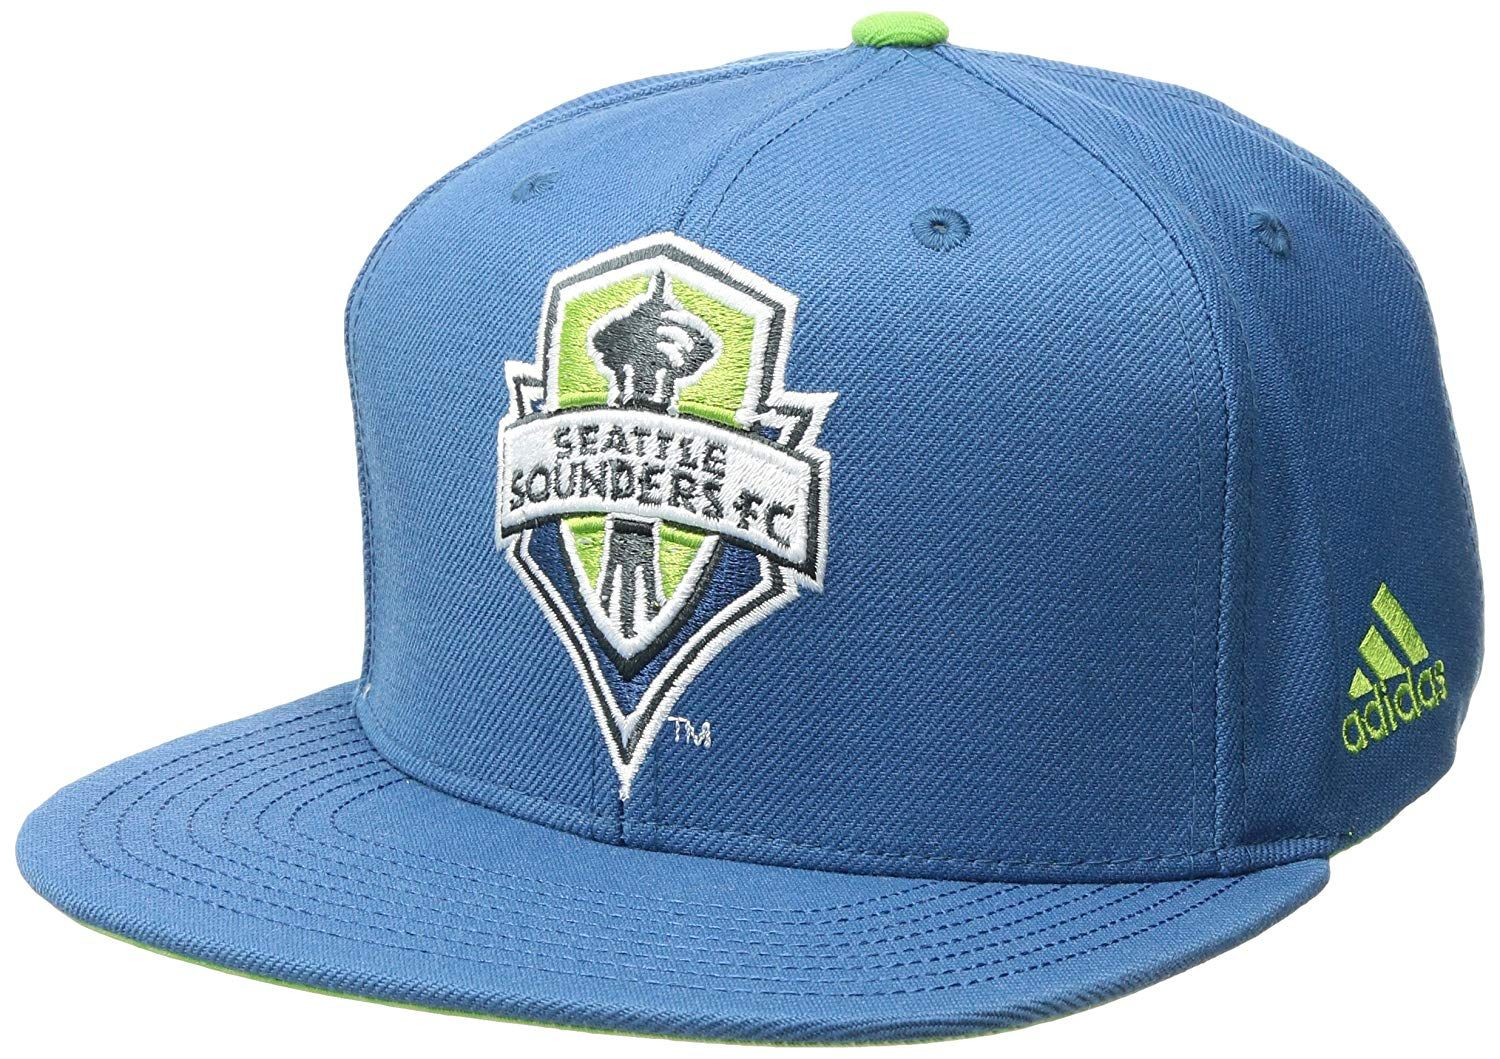 a6c133dd036 MLS Seattle Sounders FC Adult Champion Snapback with Cup